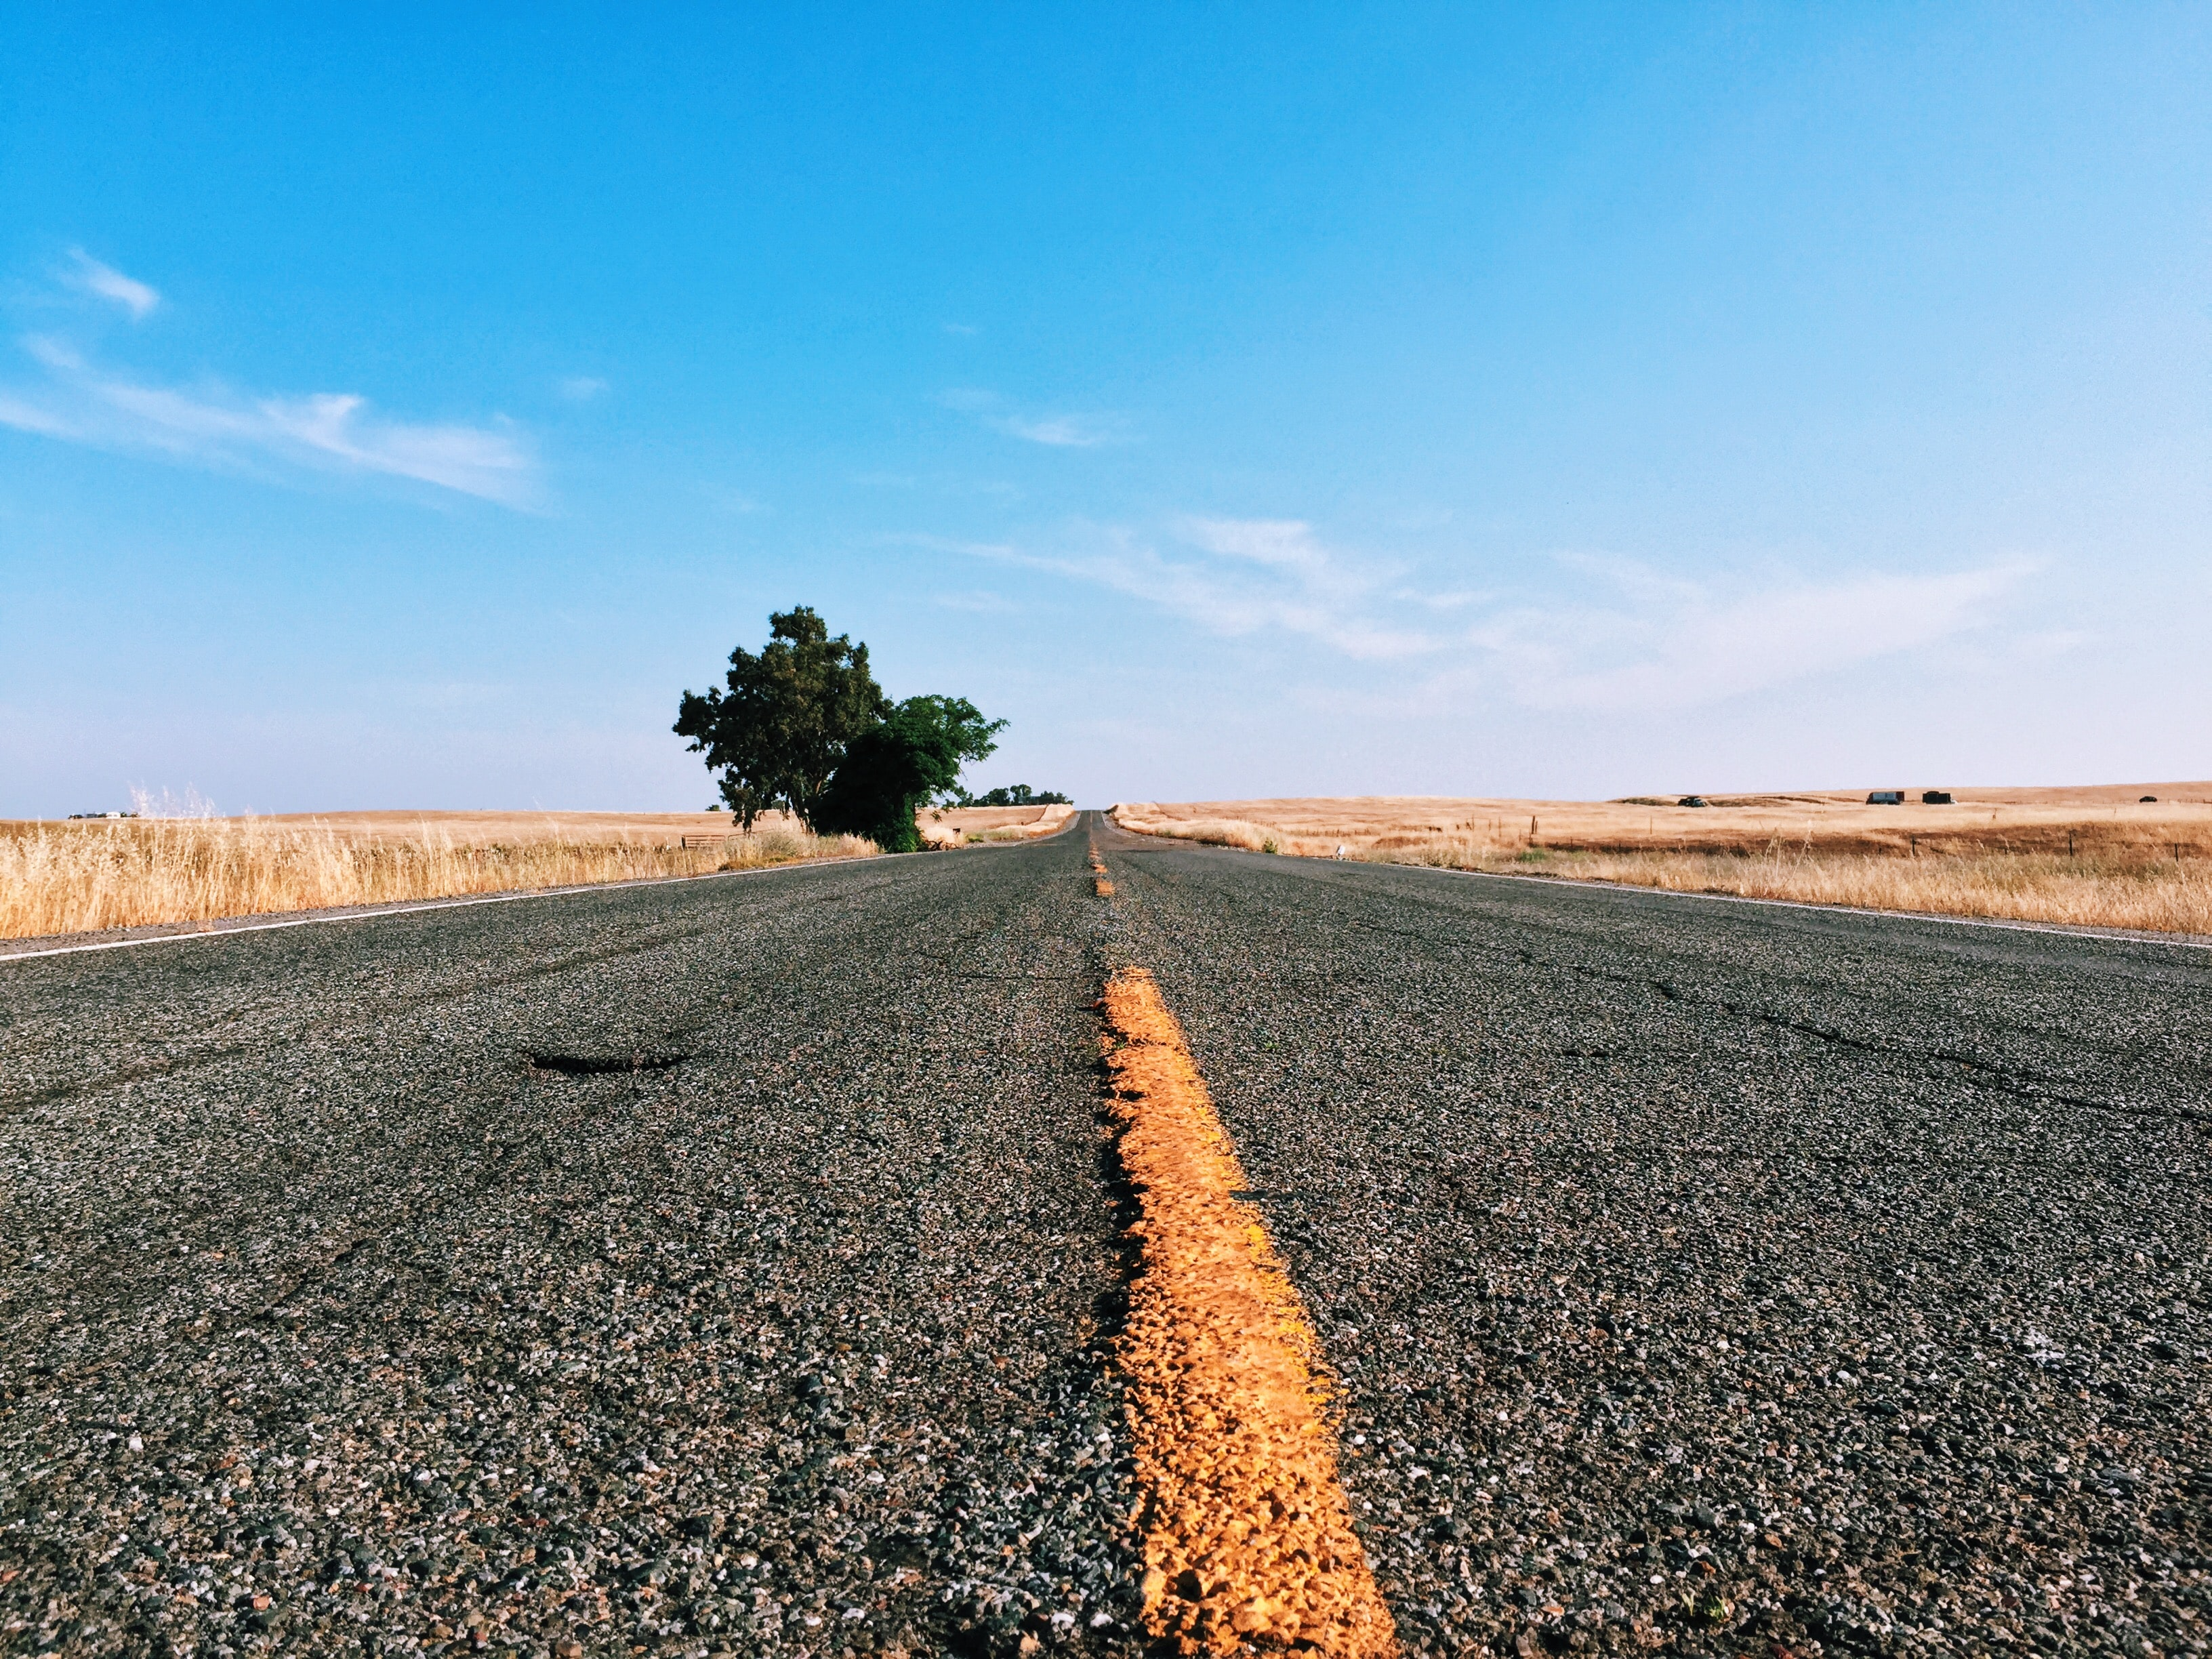 photography of road pavement with tree